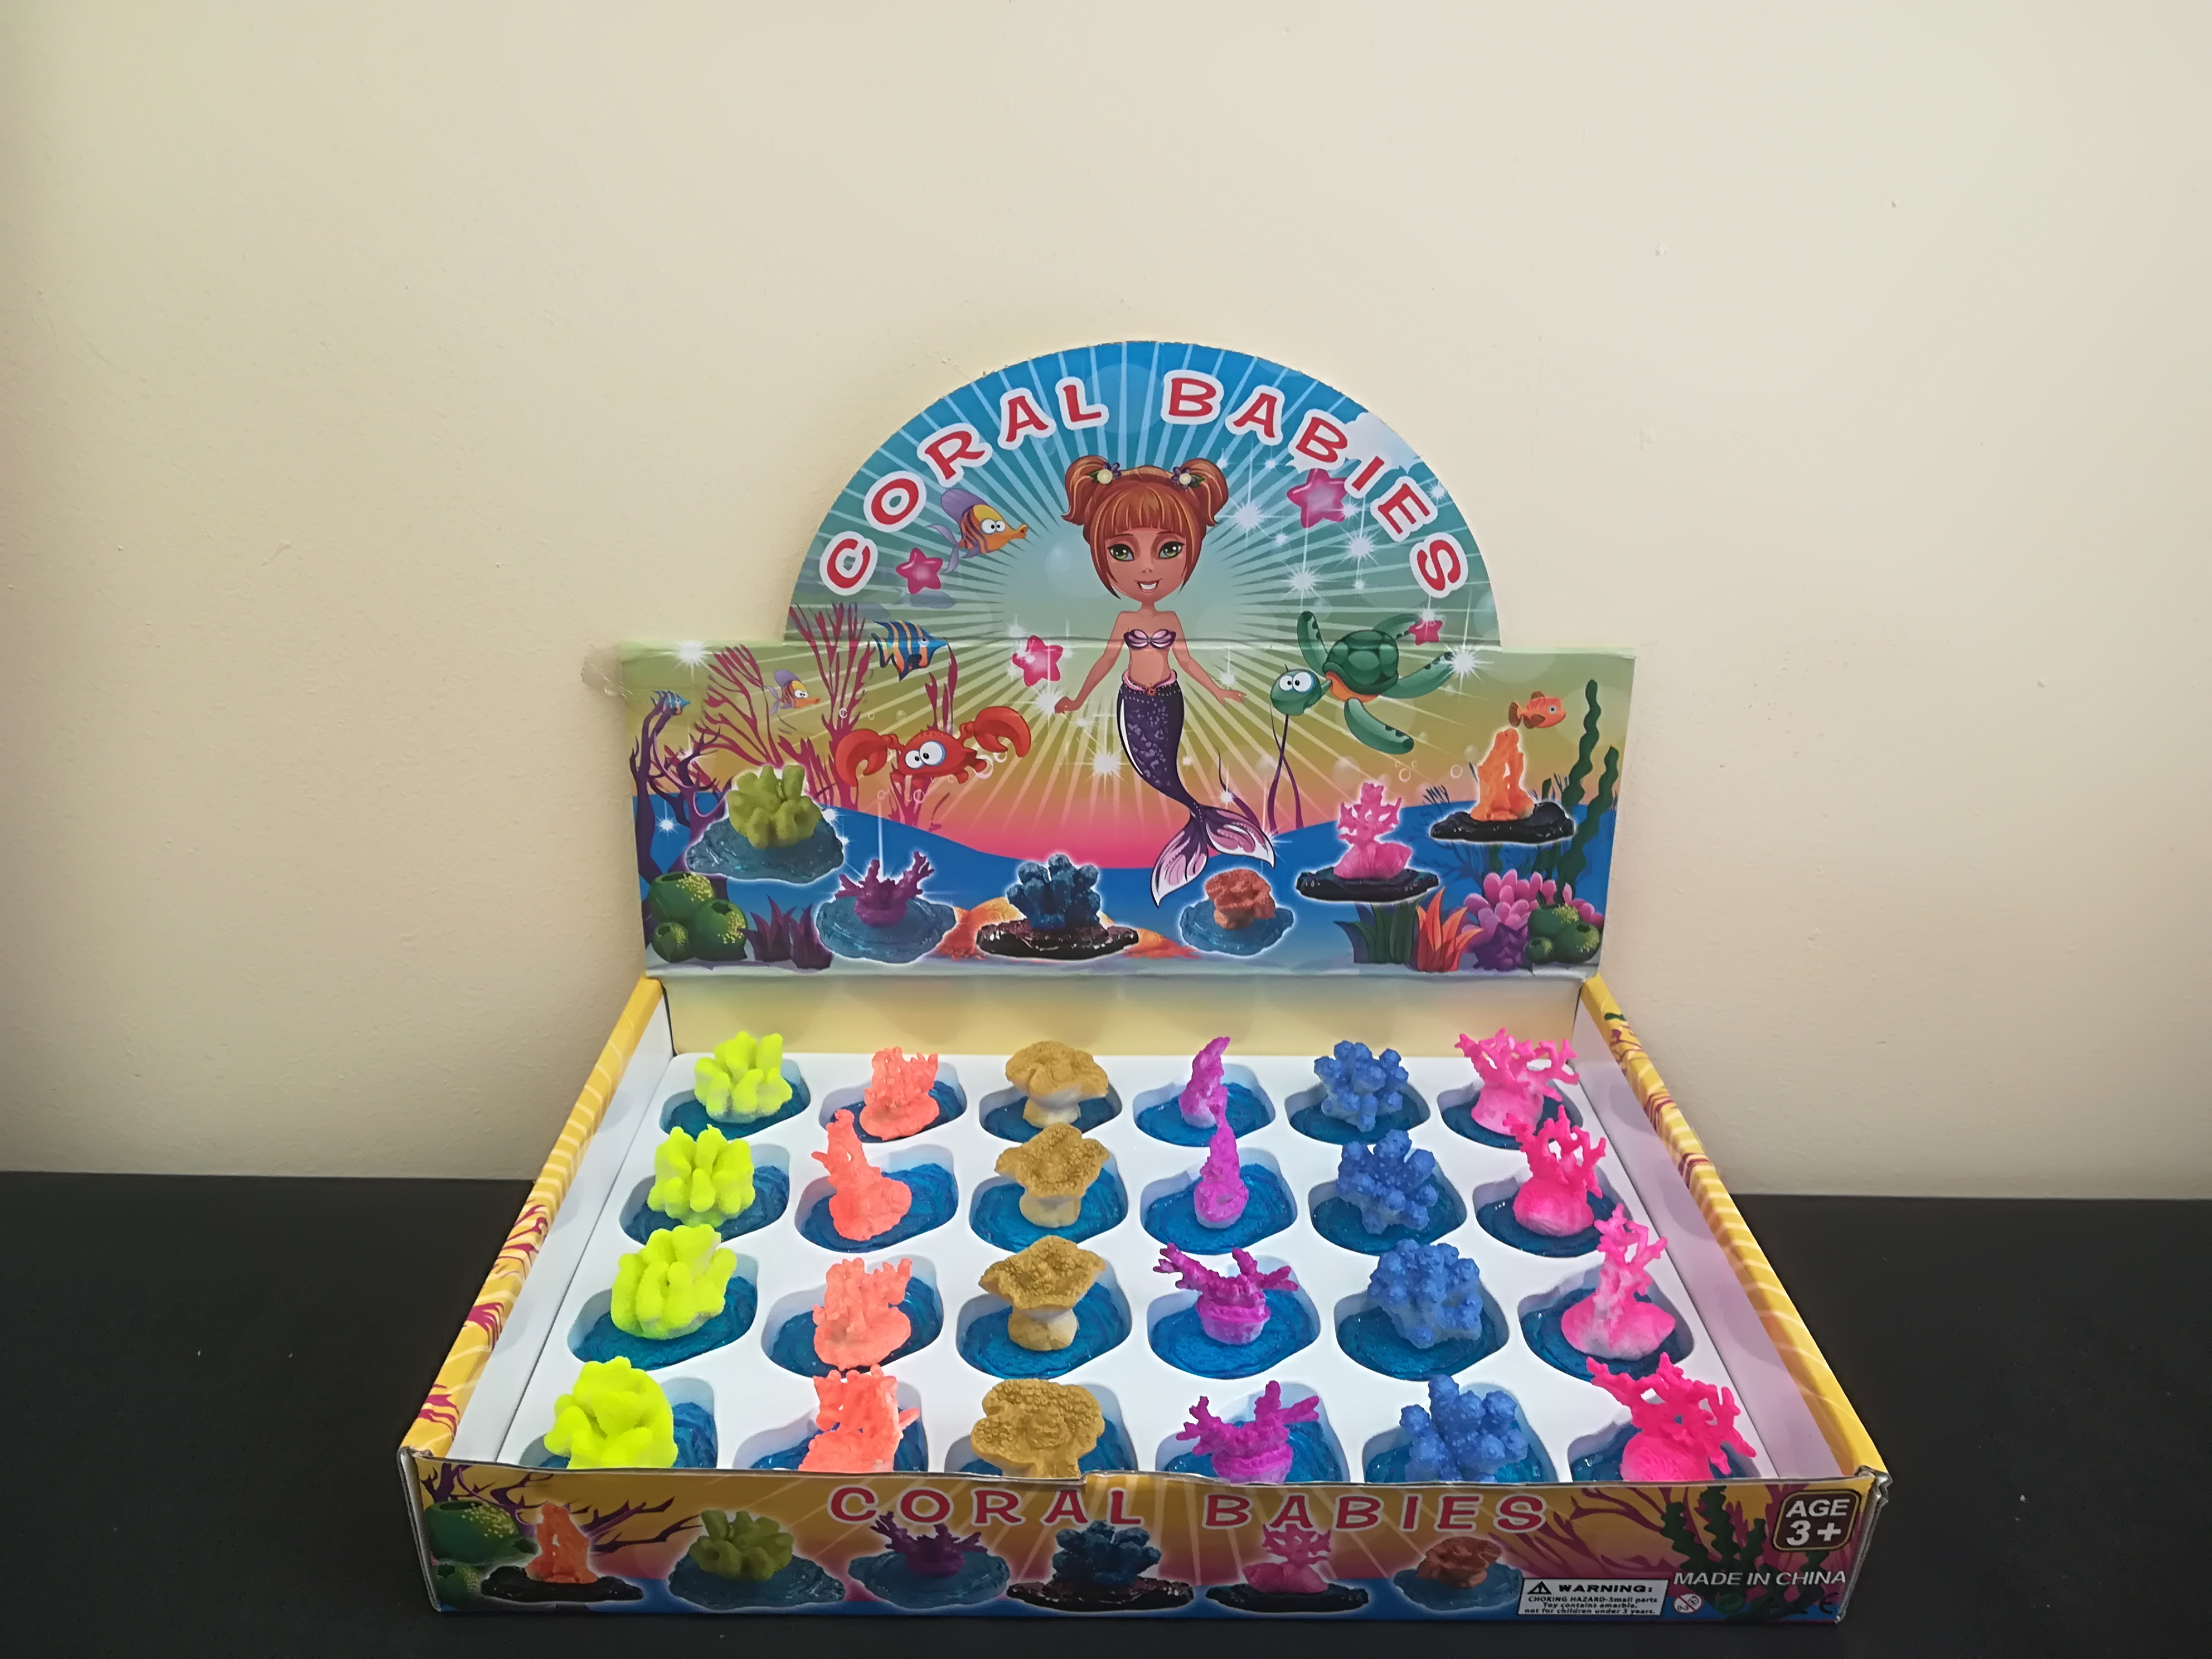 Coral Babies toys from Mercury Wholesalers